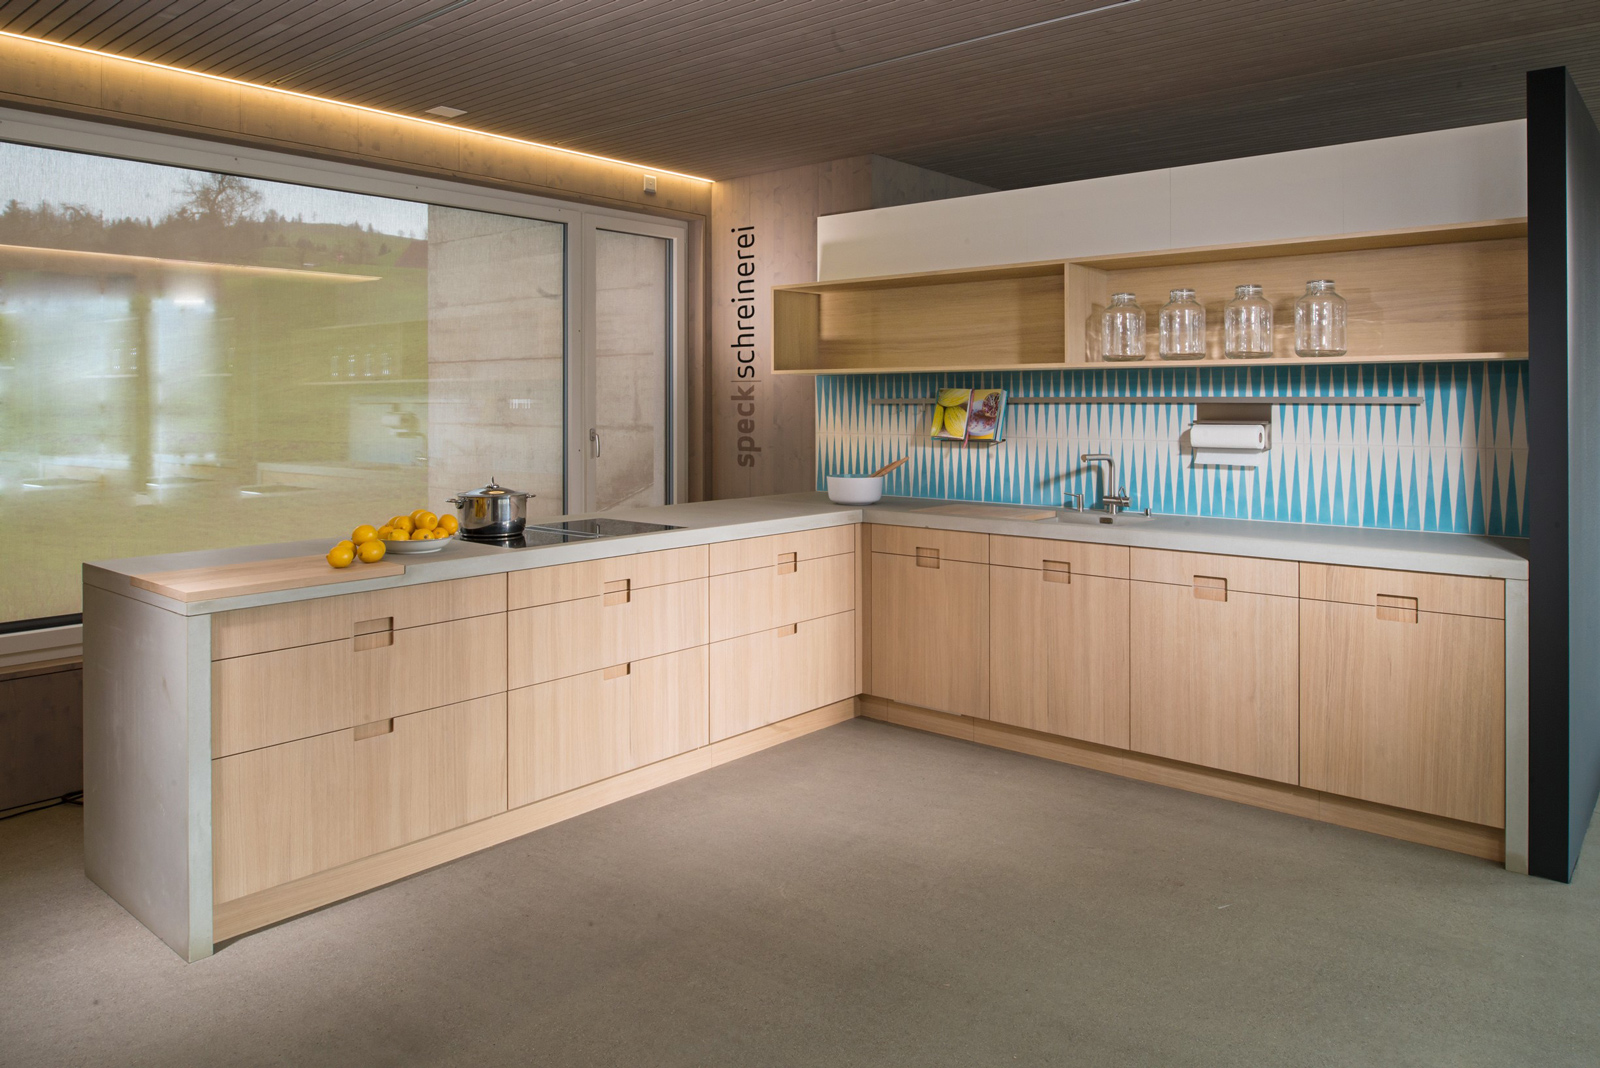 Gallery together with 6385858 moreover Gaggenau And Occhio A Mutual Understanding 1 in addition Living Style likewise Ringwood Modern Kitchen. on kitchen design showrooms